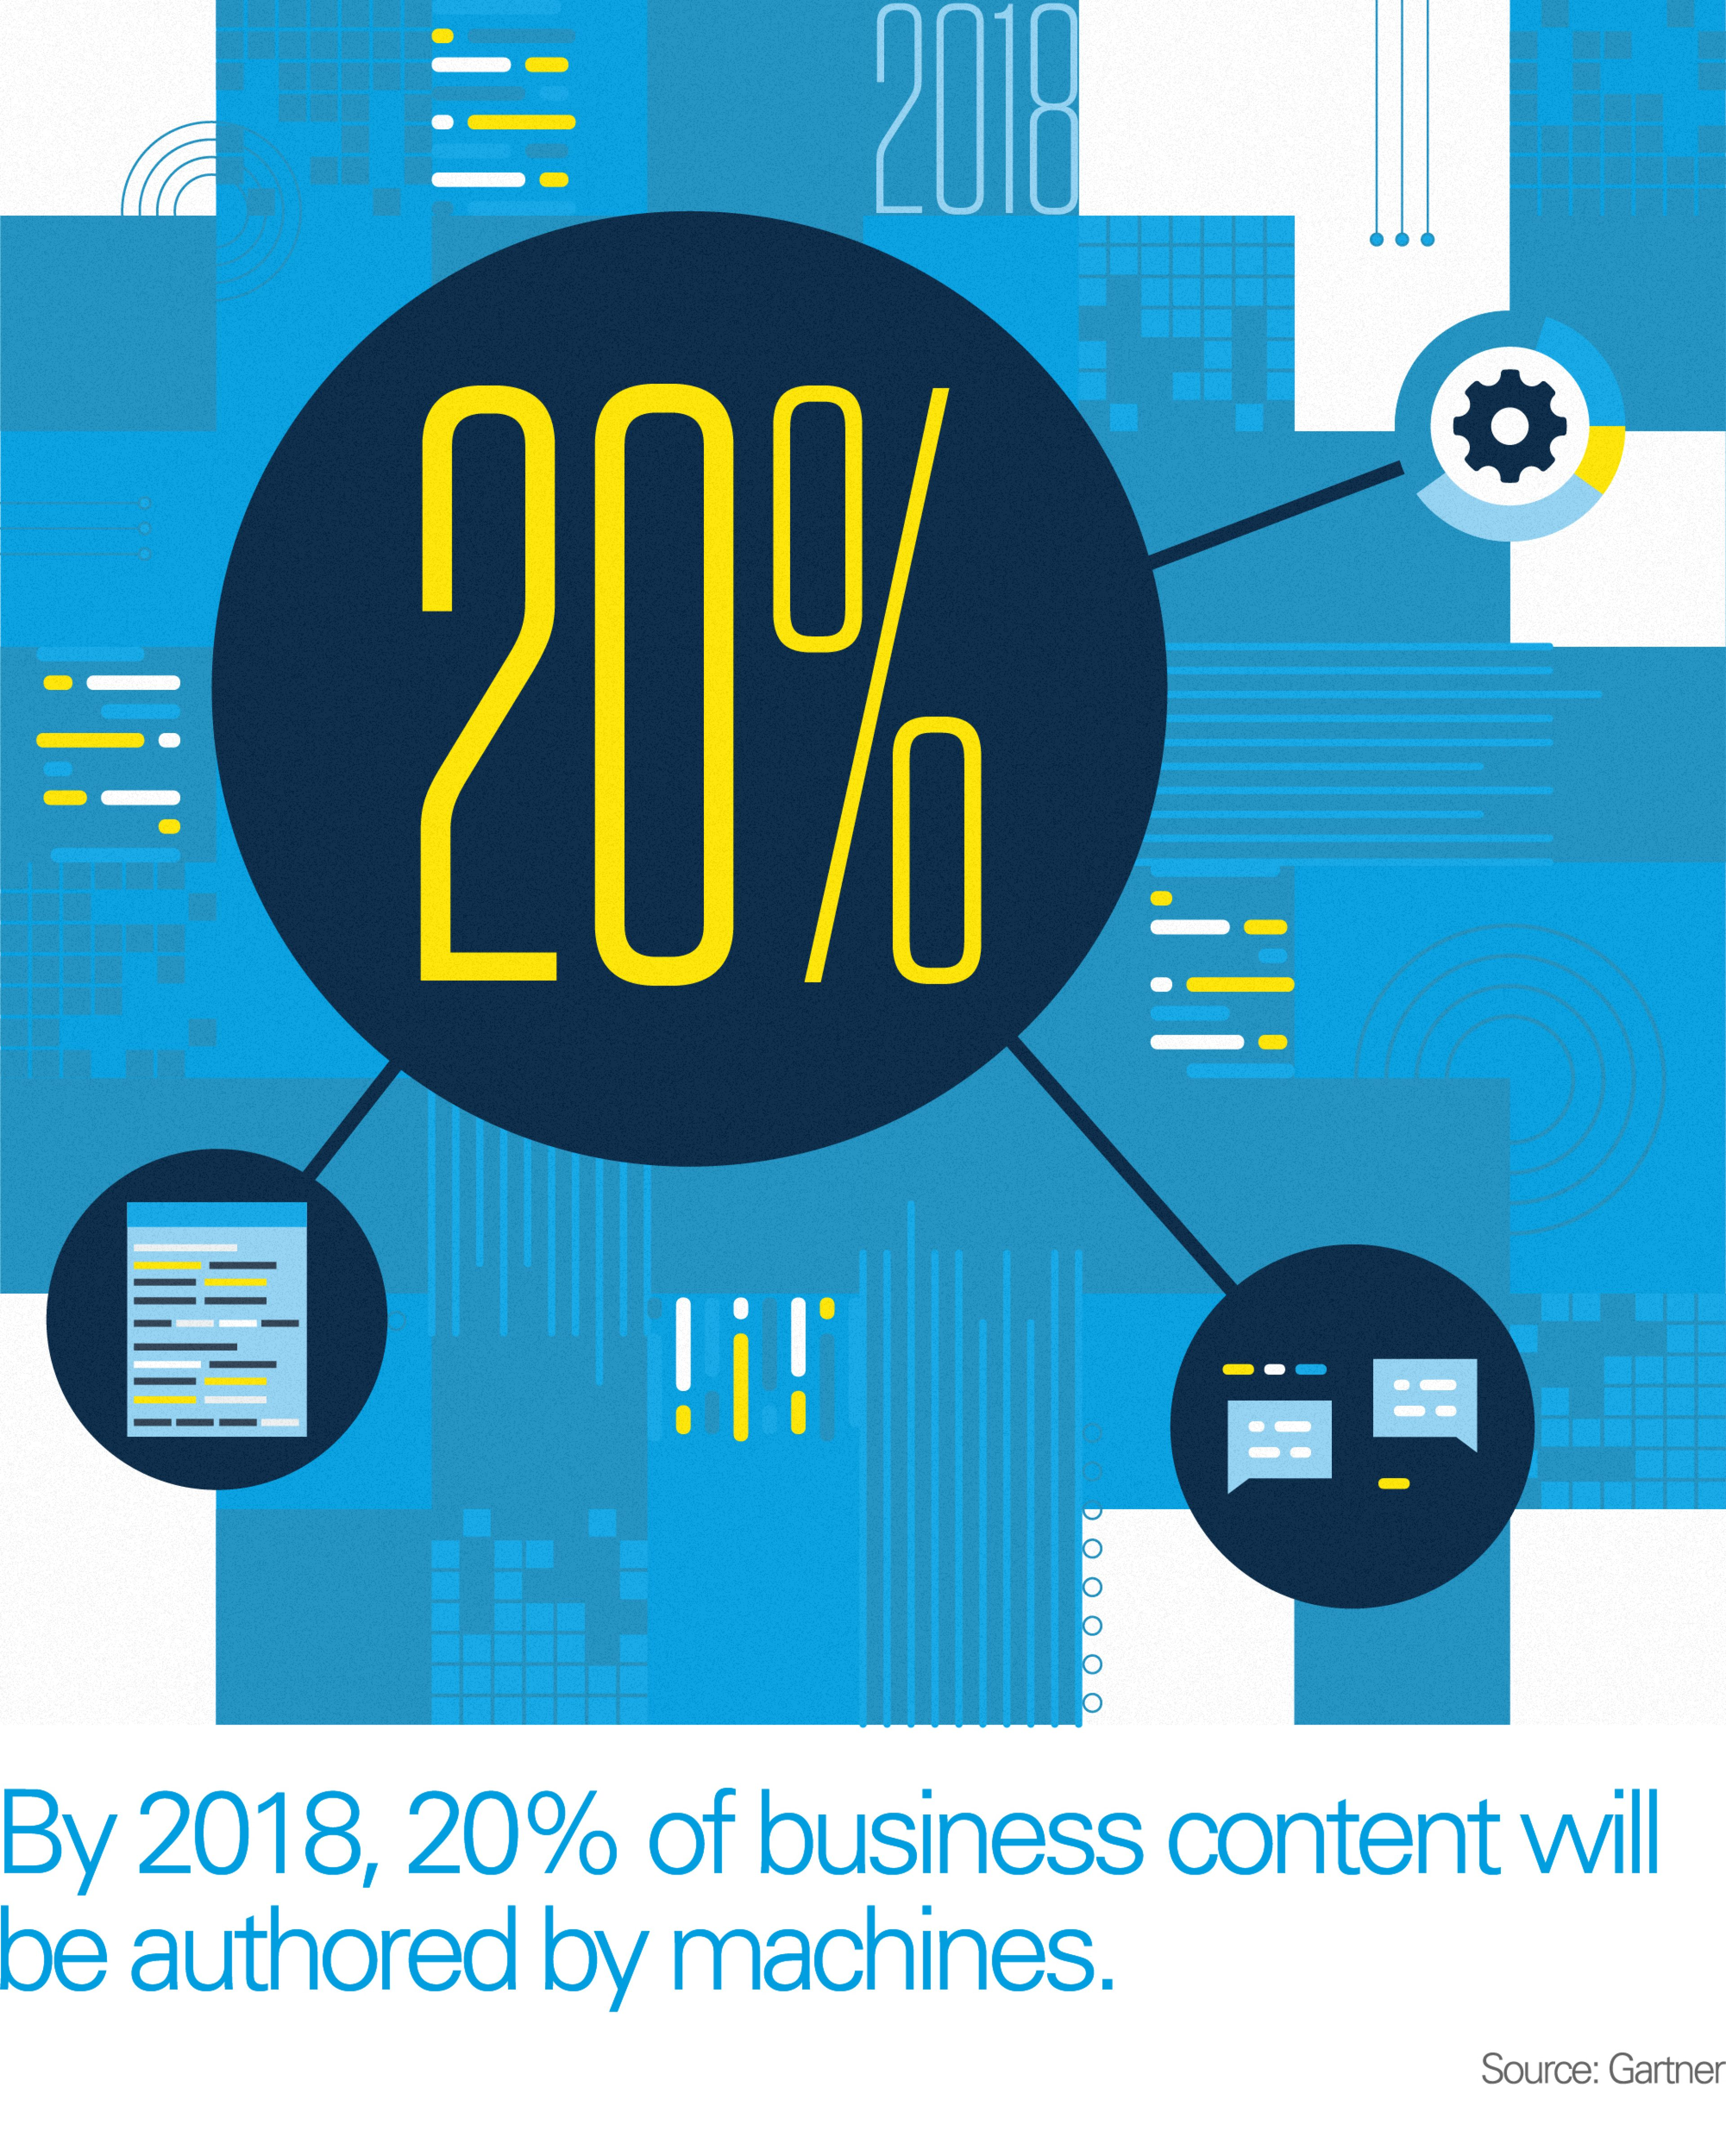 Graphic shows by 2018, 20% of business content will be authored by machines